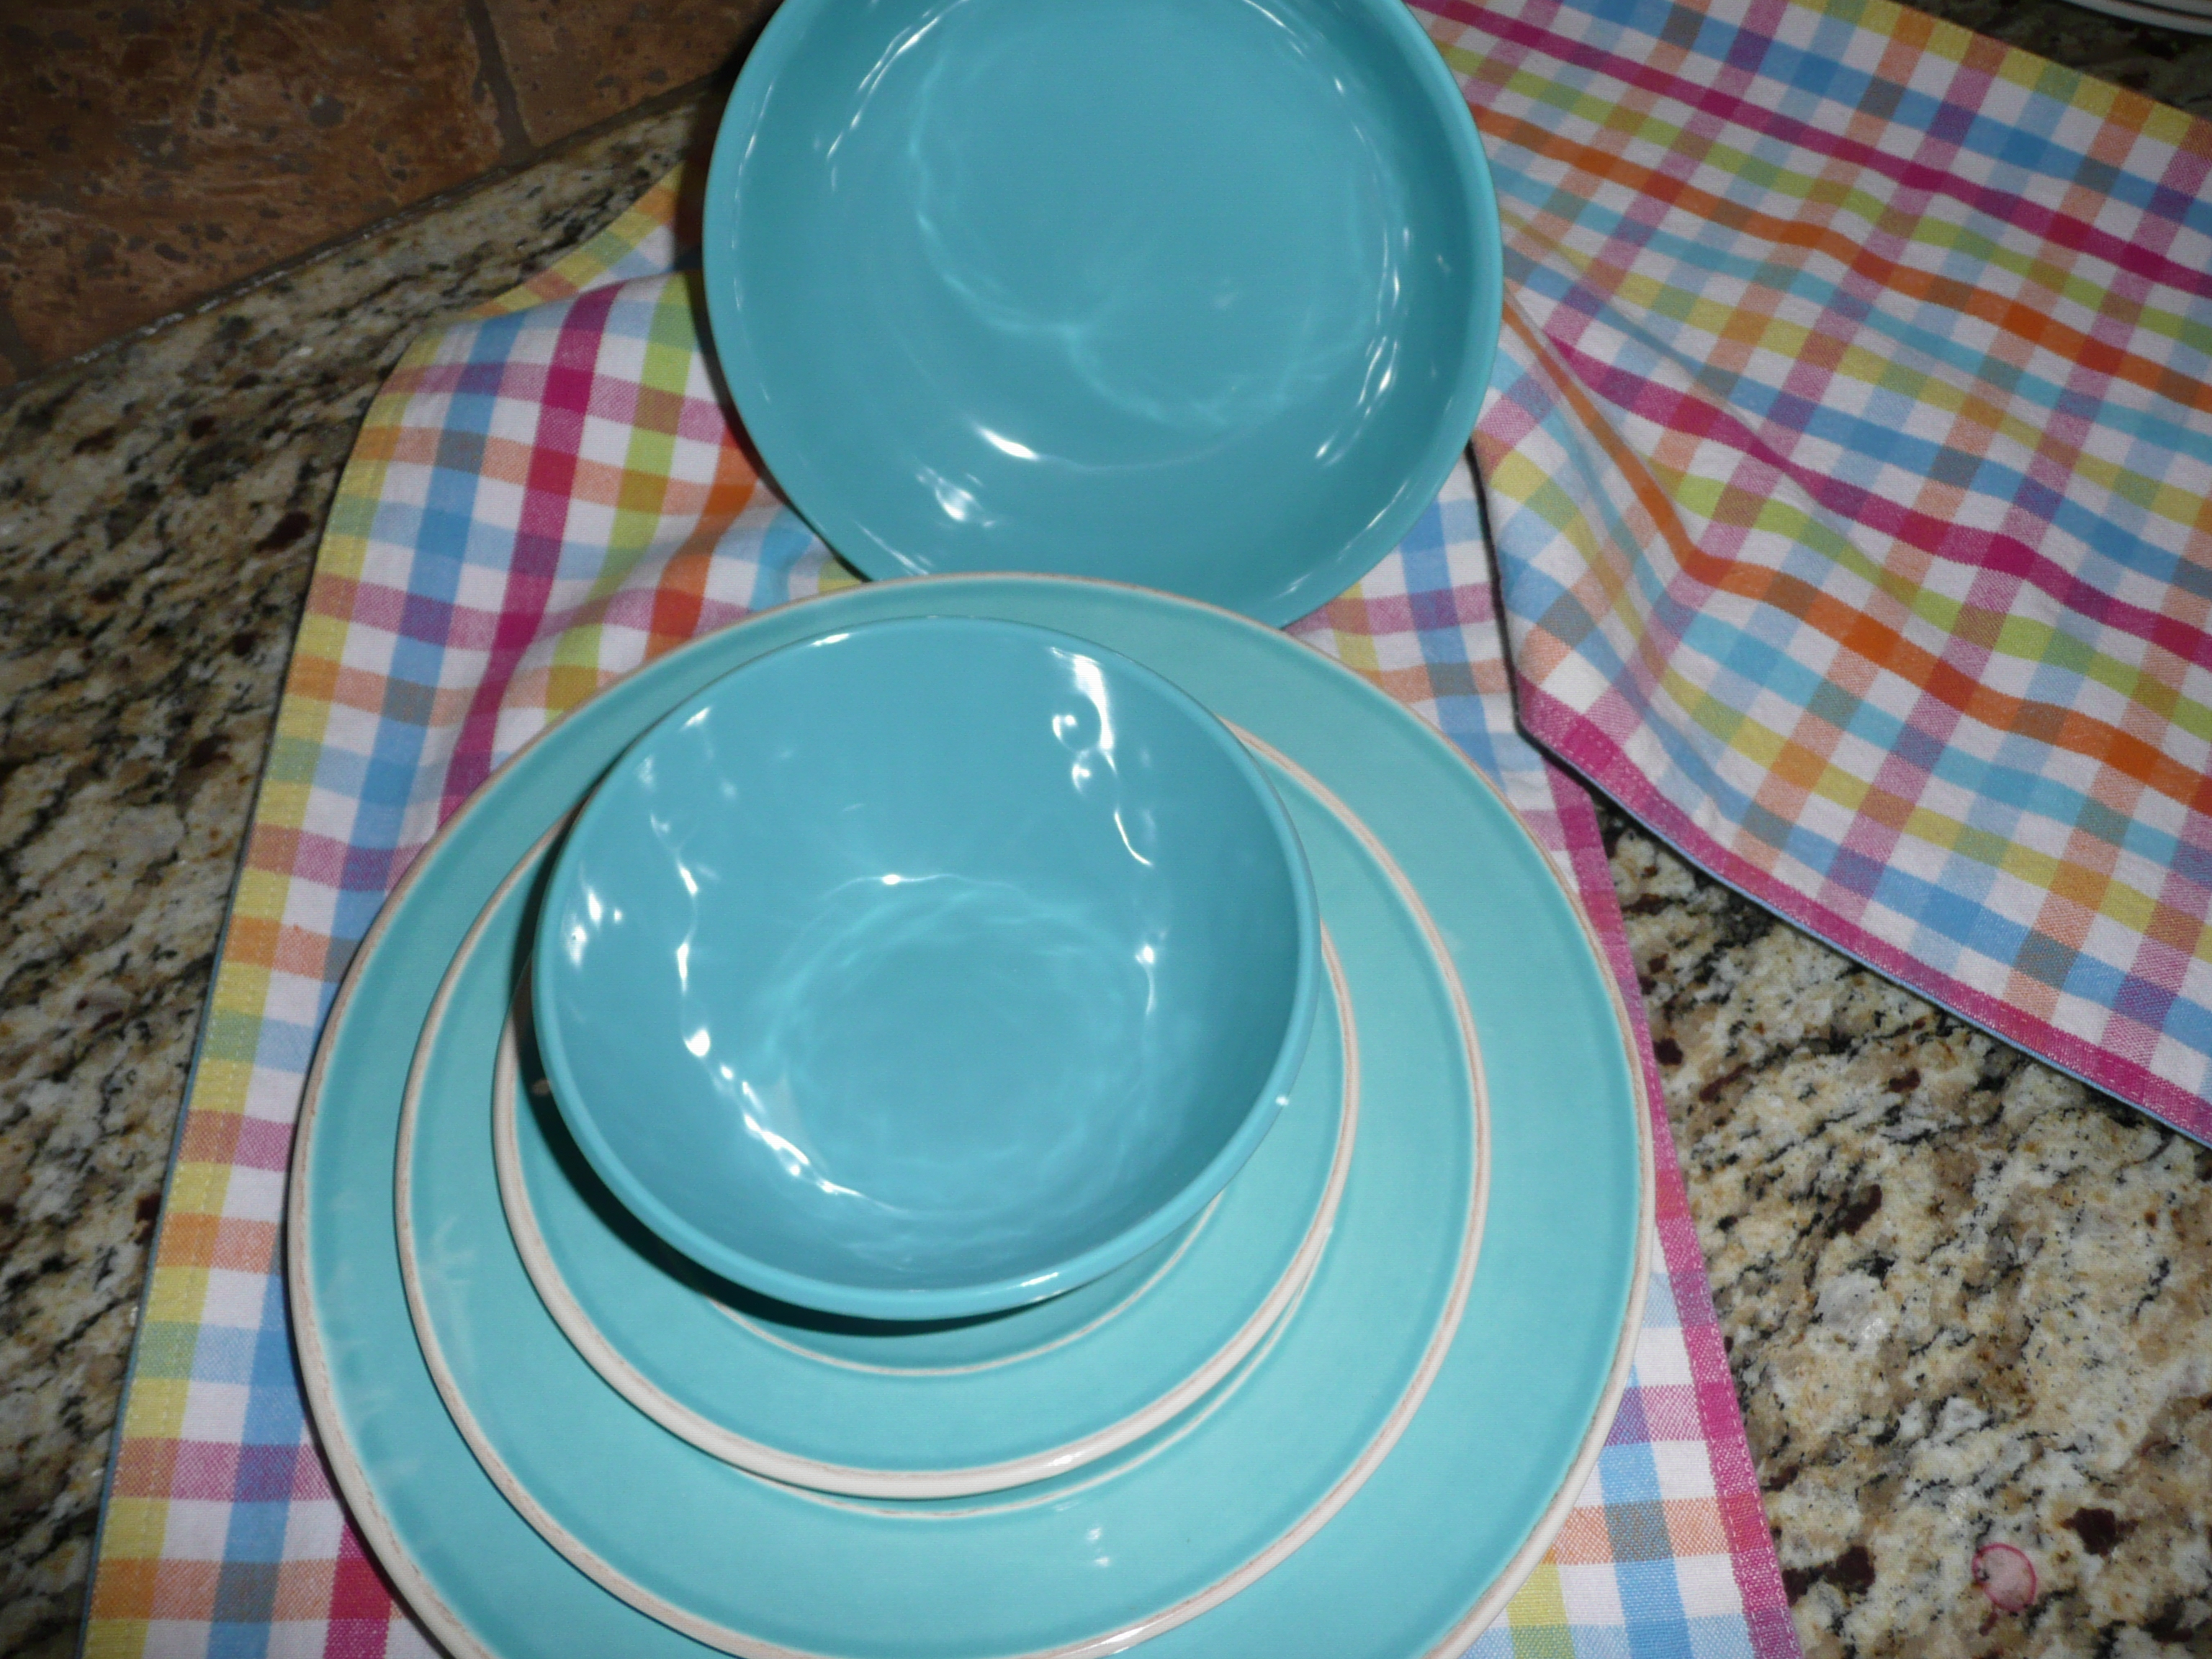 turquoise | beyond cinderella & Melamine Dinnerware Sets Costco \u2013 Home Accesories